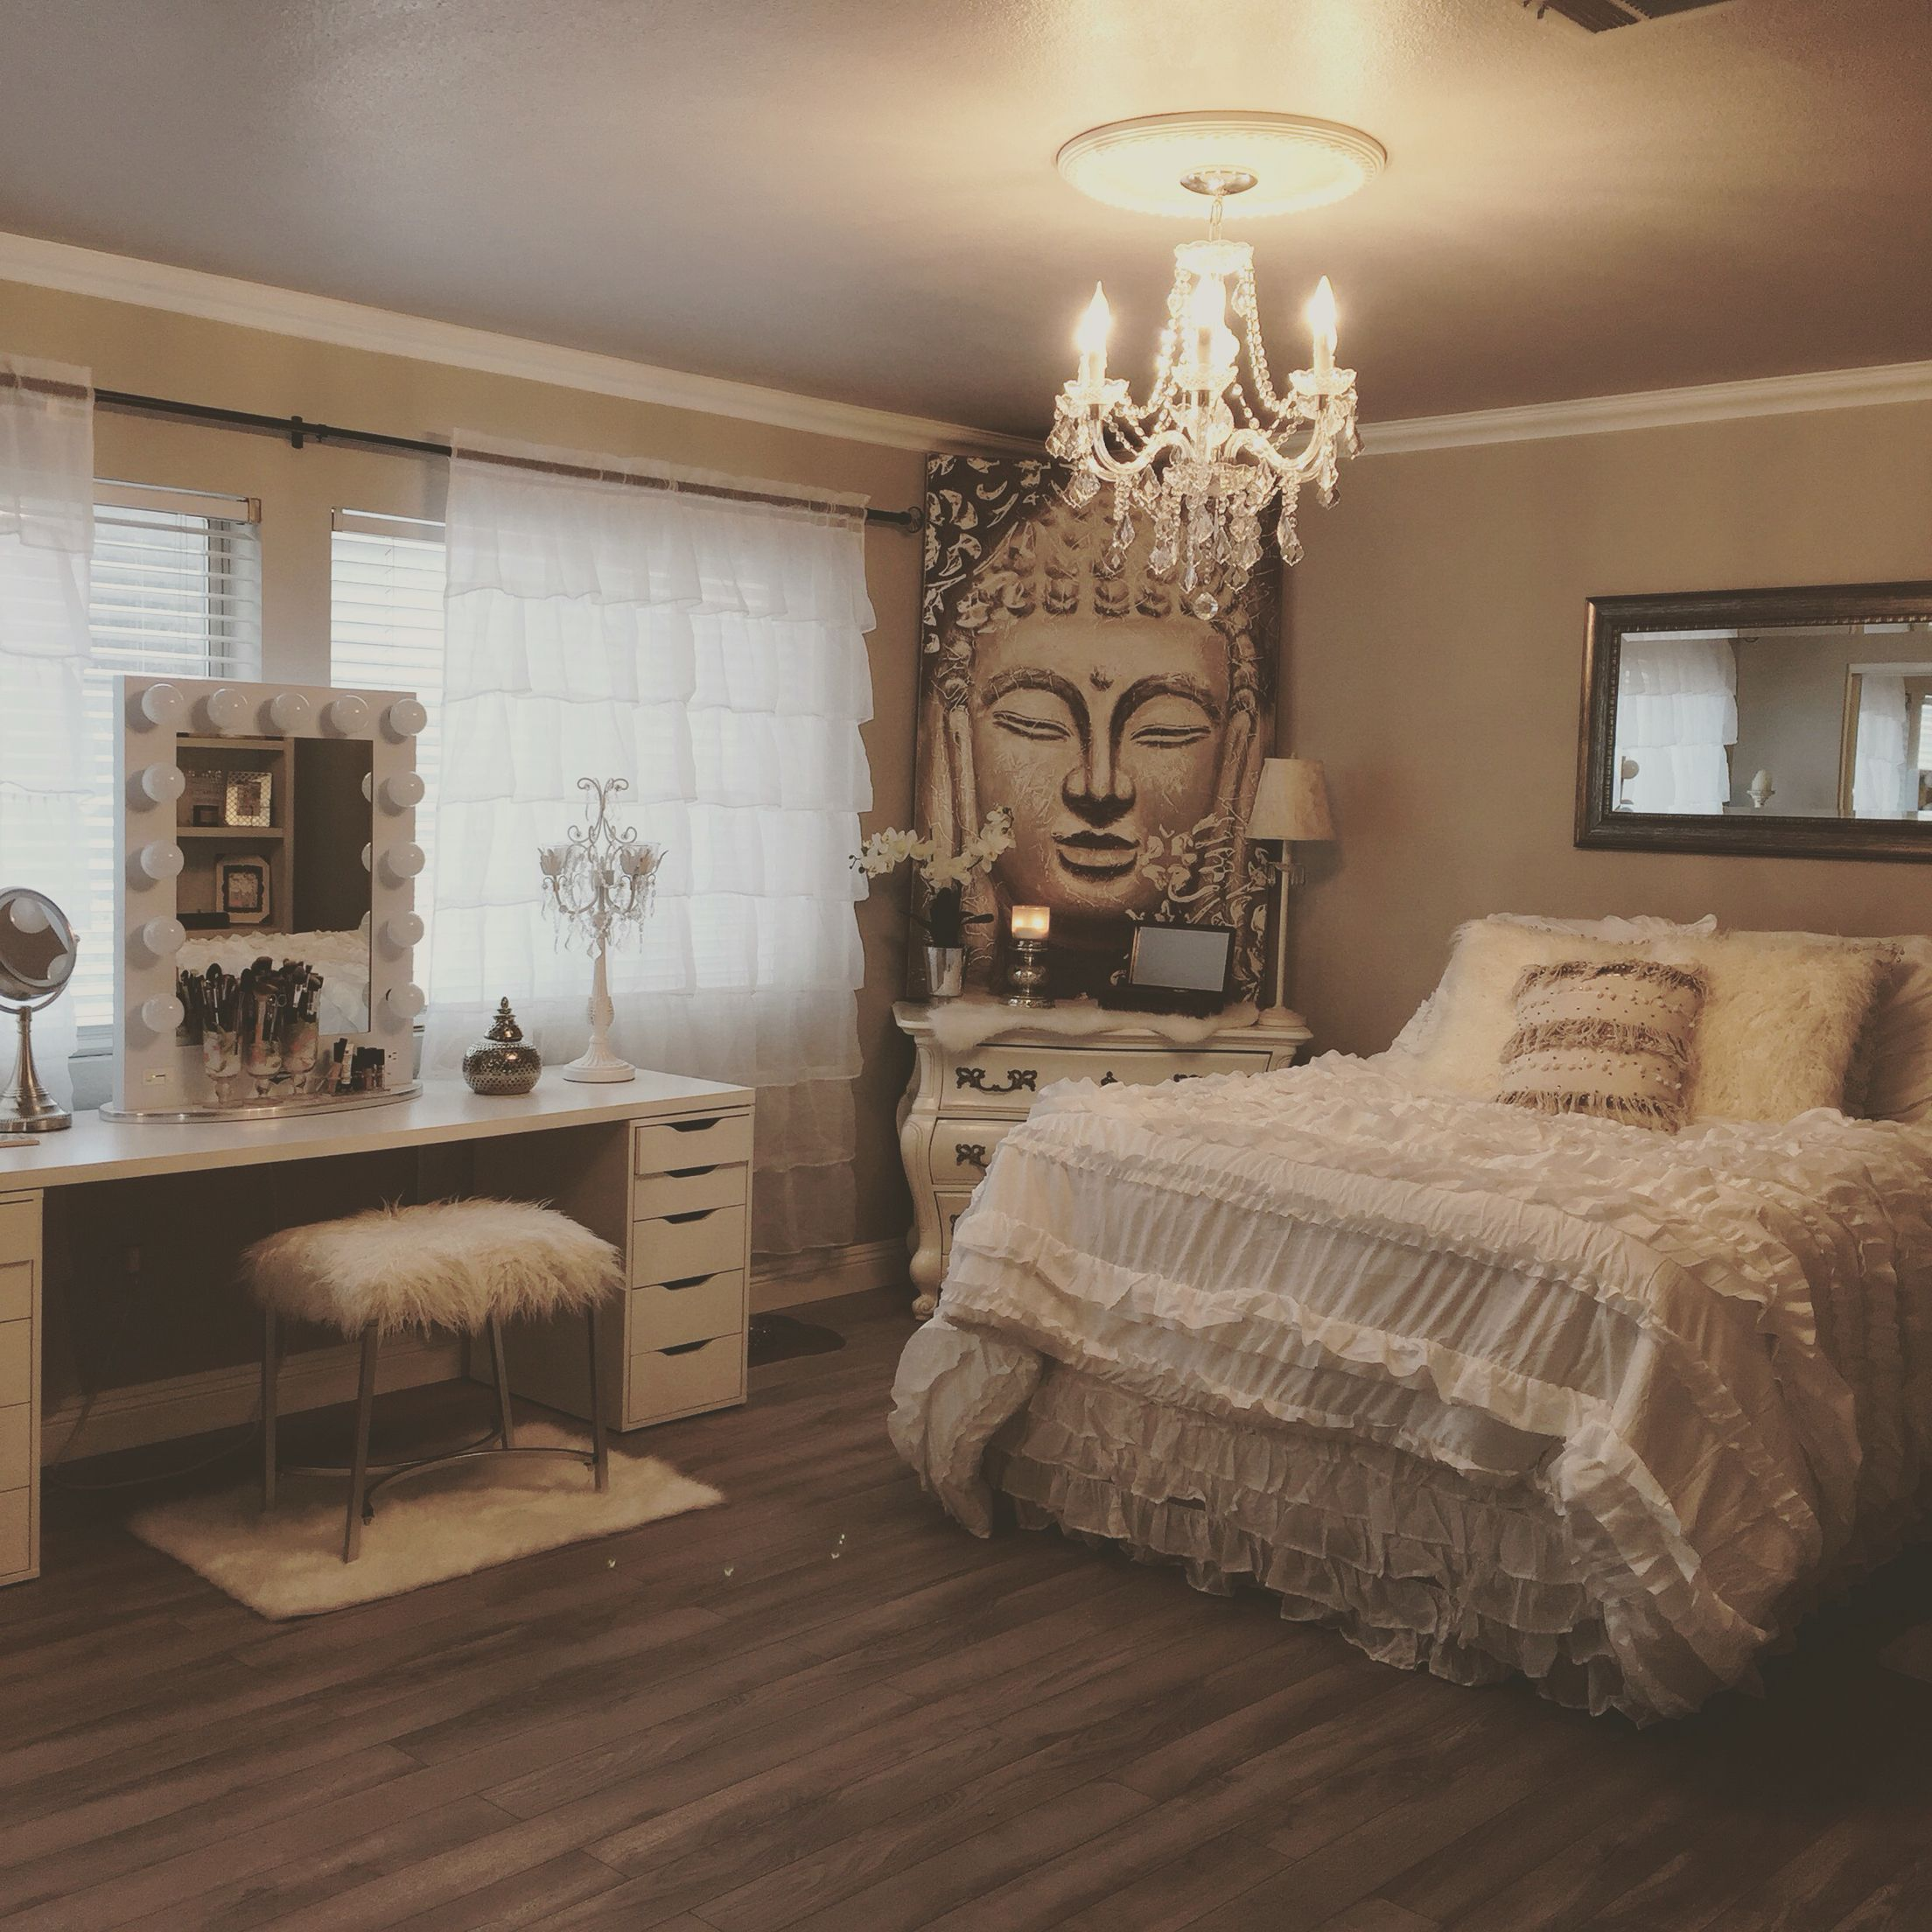 Shabby chic meets Zen glam My new bedroom Pinterest Heminredning, Sovrum och House